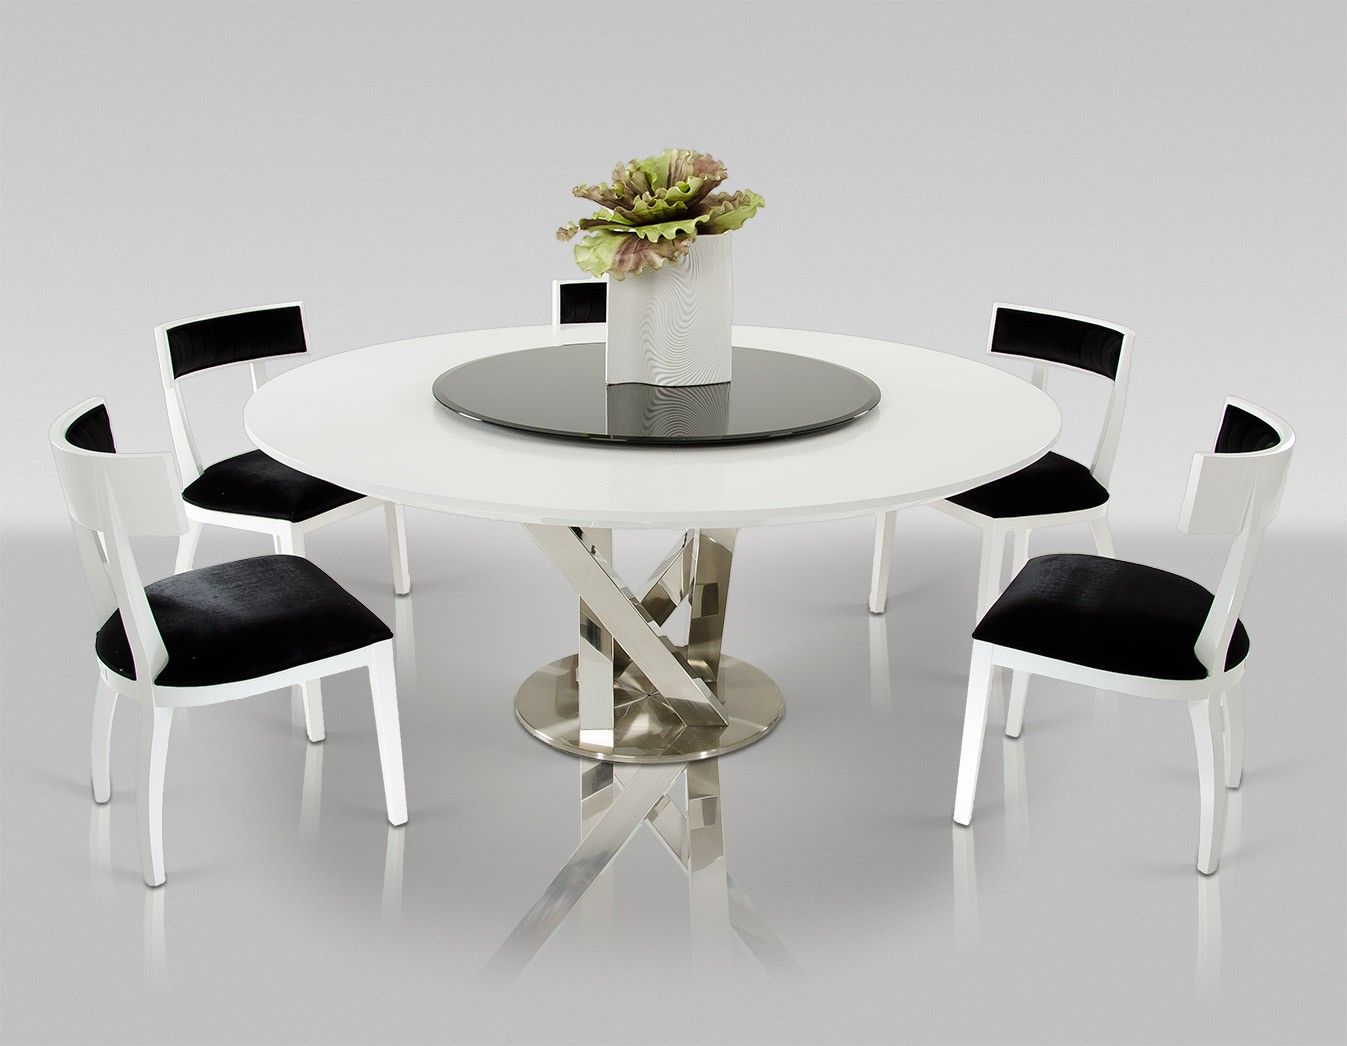 A X Spiral Modern Round White Dining Table With Lazy Susan In 2020 Round Dining Table Modern Modern Kitchen Tables Contemporary Kitchen Tables